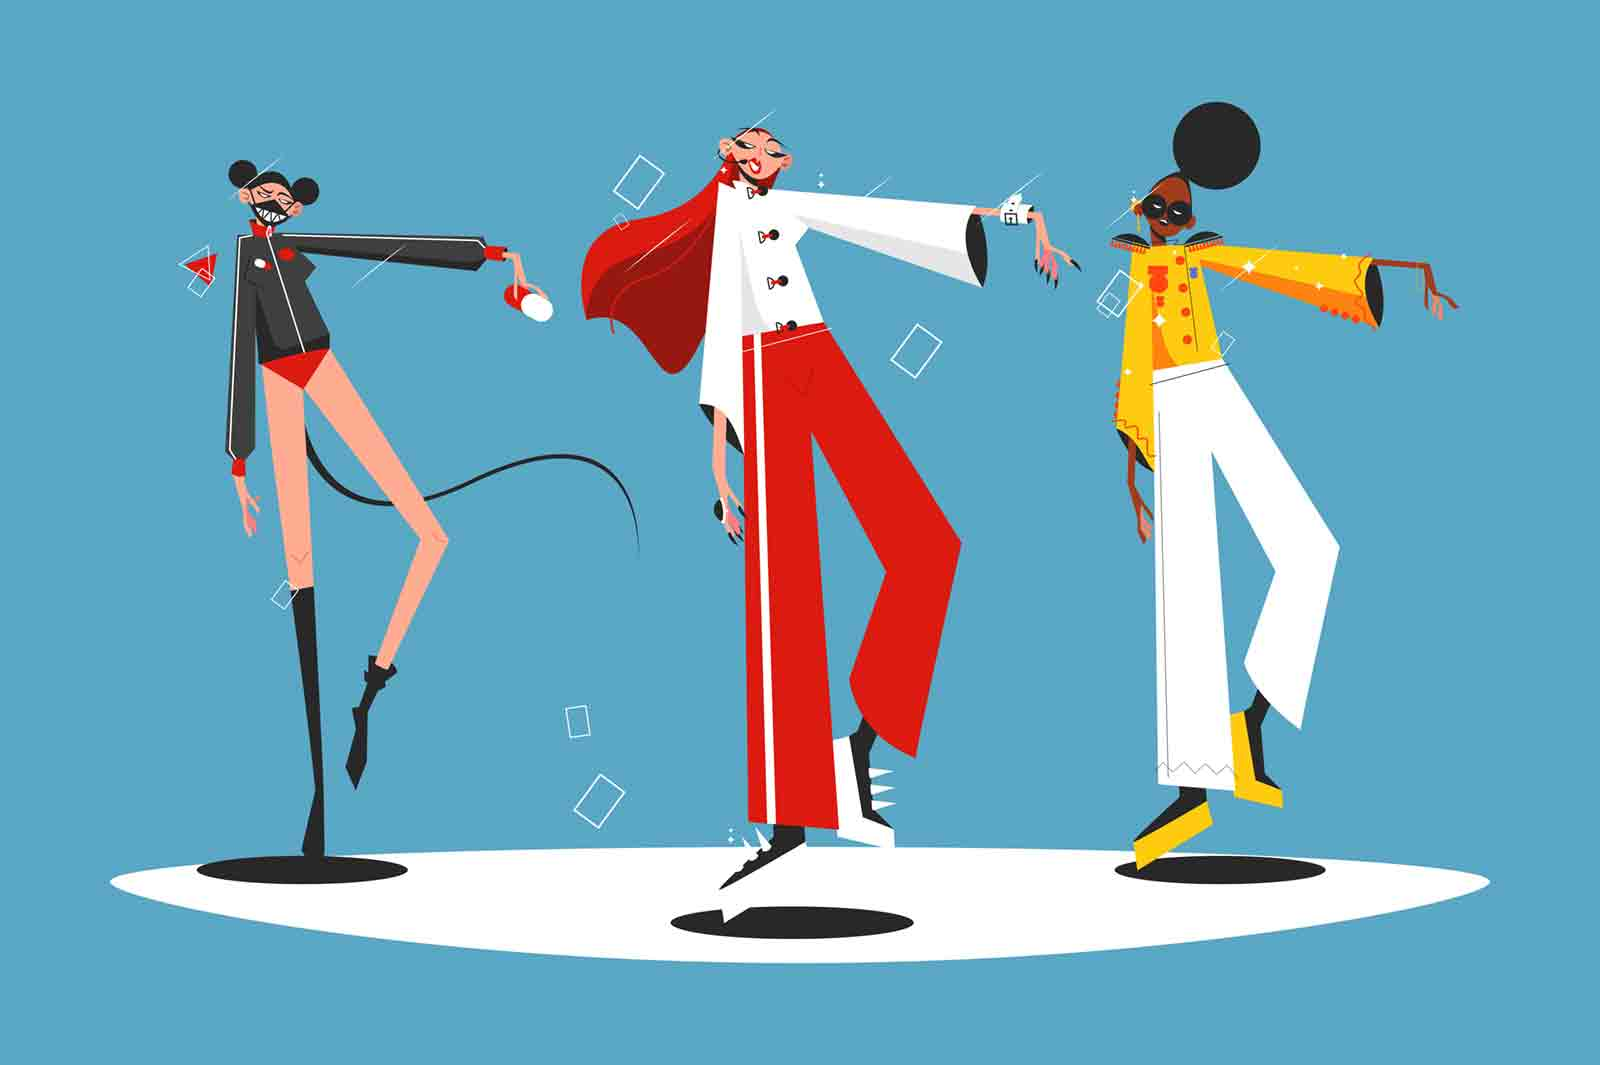 Music band performance vector illustration. Multinational women band in fashionable costume dancing on stage flat style design. Show business concept